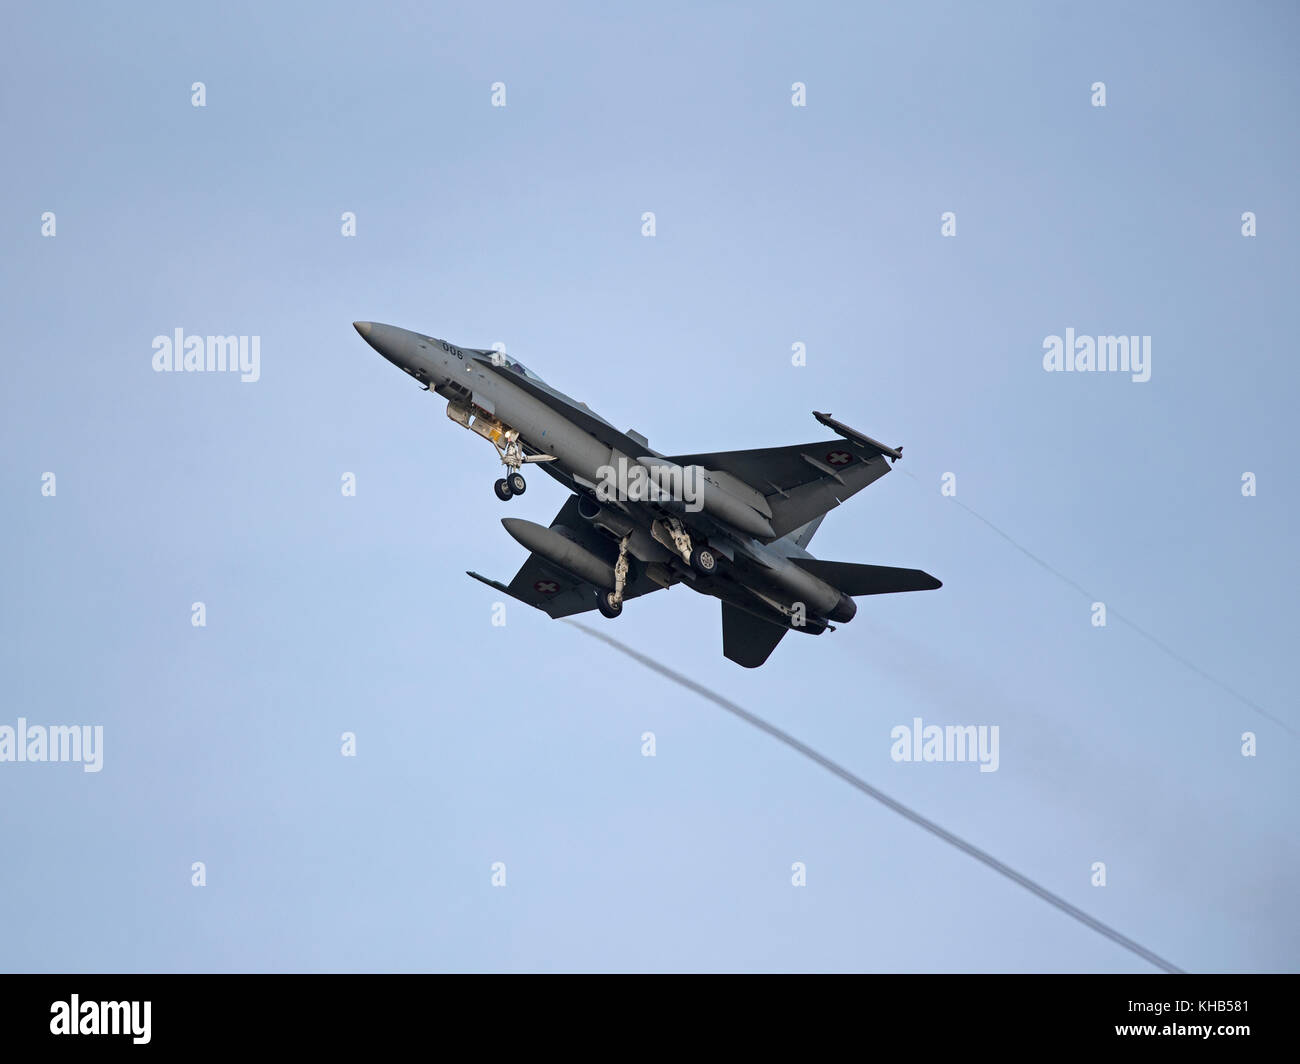 Swiss Air Force McDonnel Douglas F18C/A Hornet Fast Twin Engined Jet Fighter Aircraft.on 4 week pilot training exercise. - Stock Image